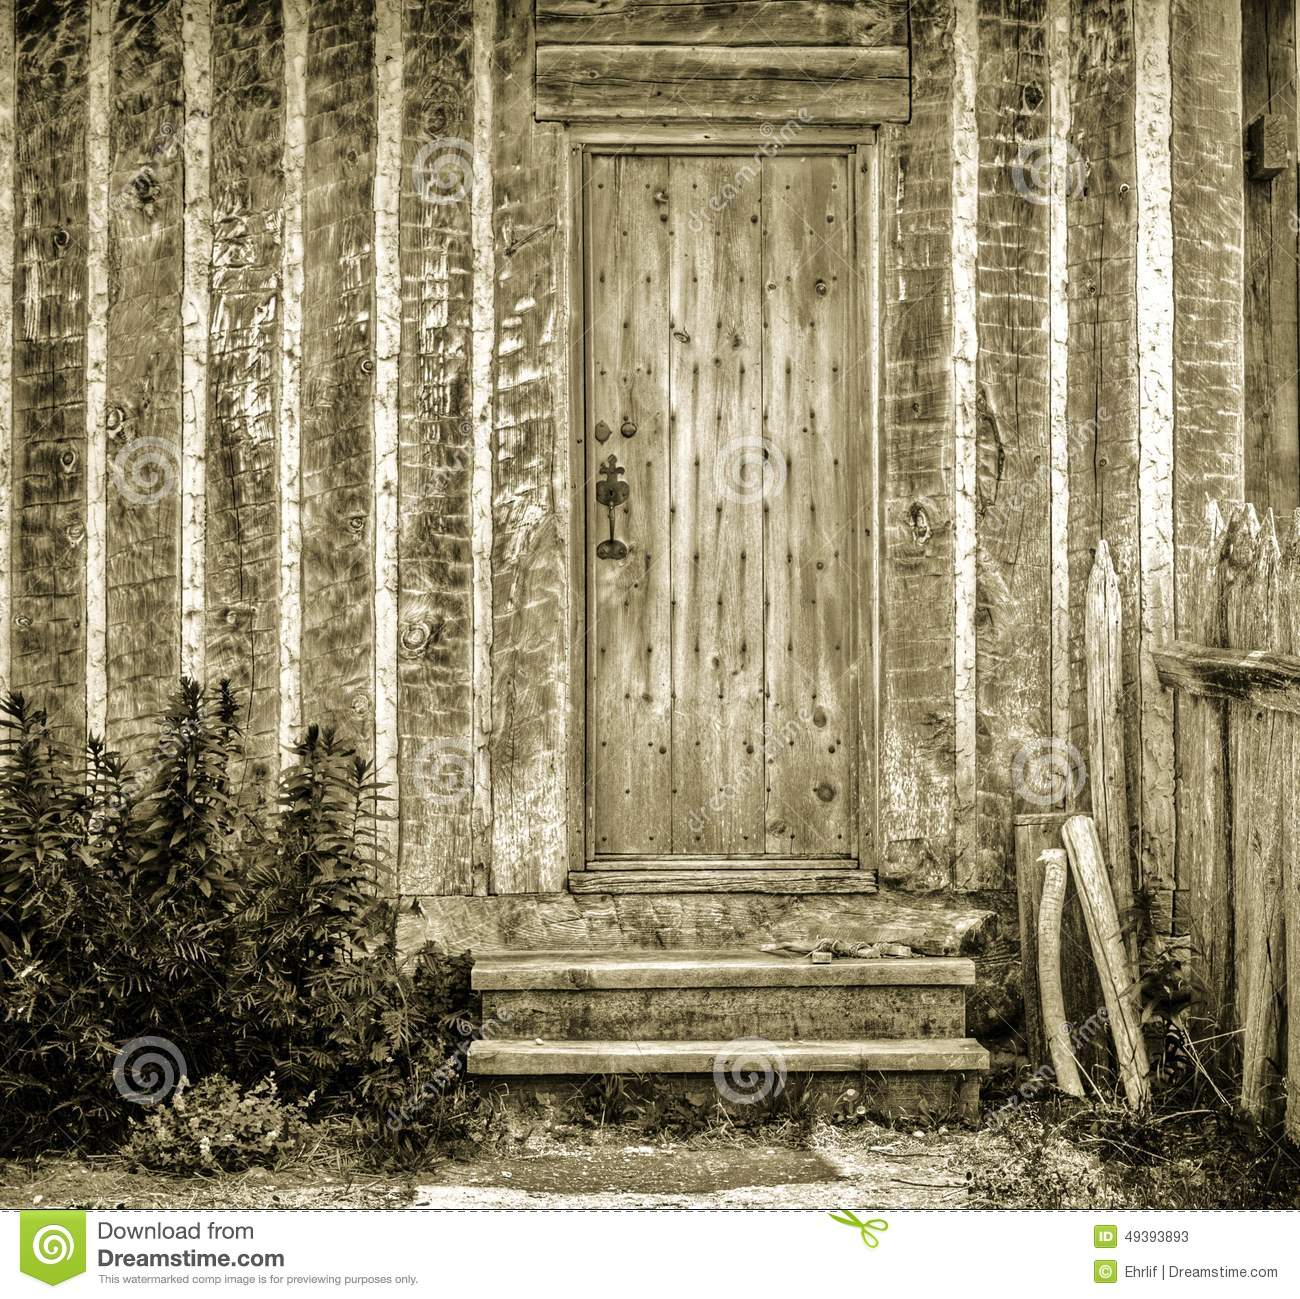 1299 #85A922 Front Door And Stoop Of Historical European Style Cottage. wallpaper European Front Doors 46251300